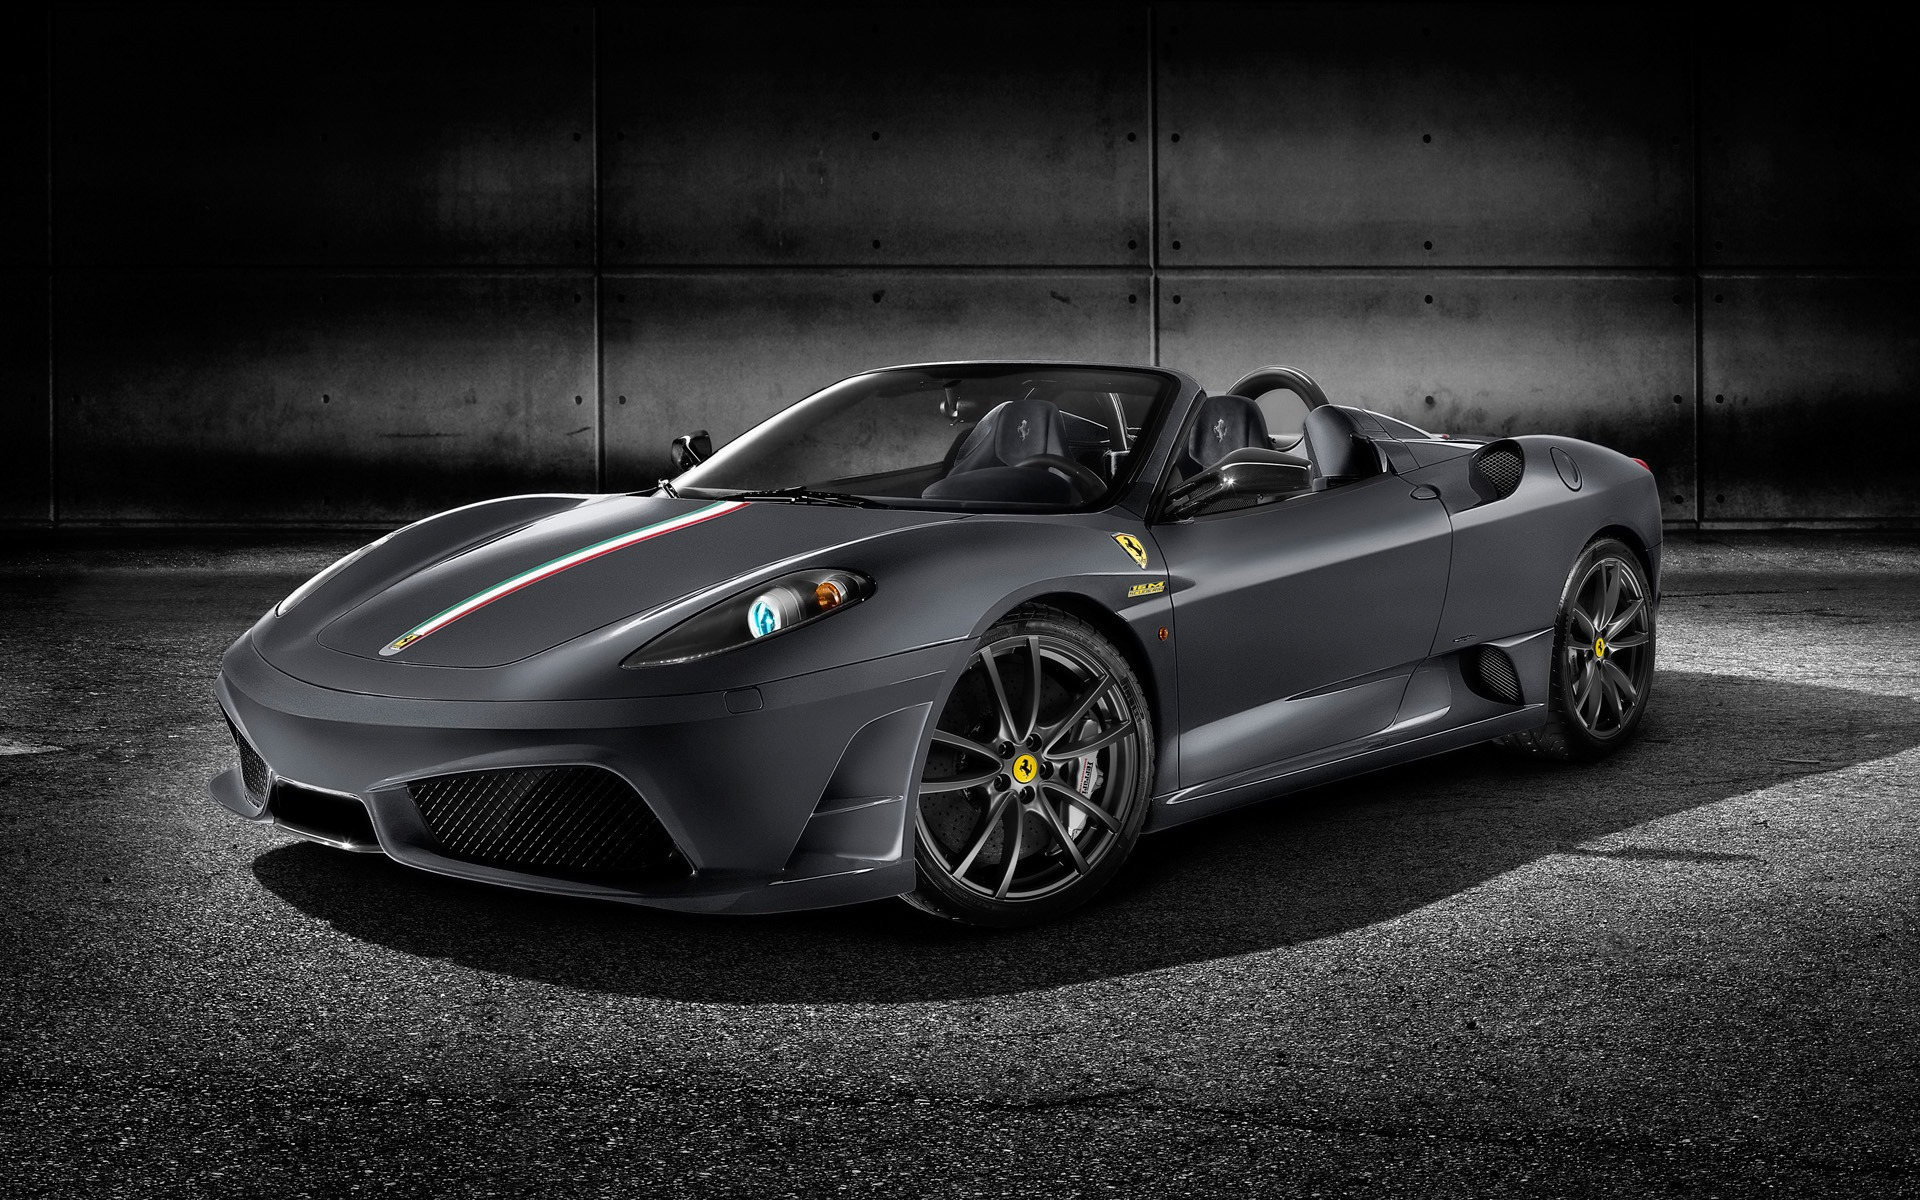 Coolest Collection Of Ferrari Wallpaper Amp Backgrounds In Hd